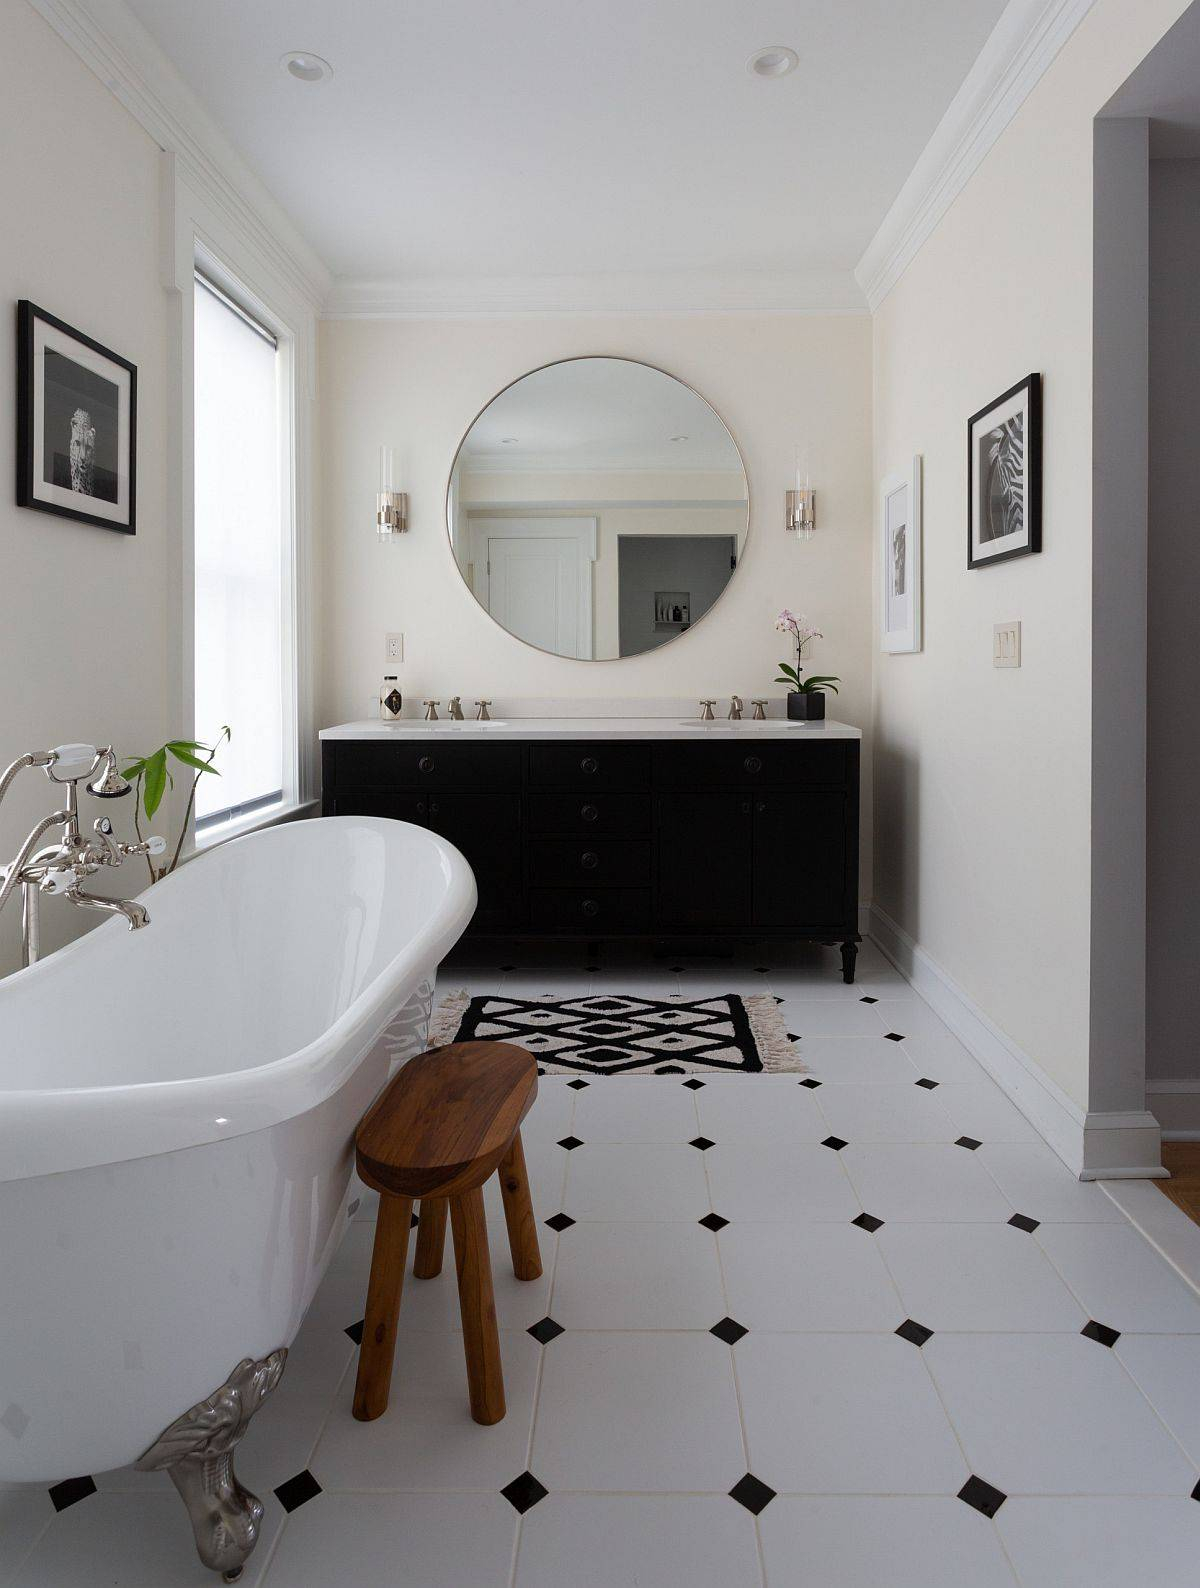 Black vanity along with cleverly placed black accents in the all-white bathroom makes a big impact